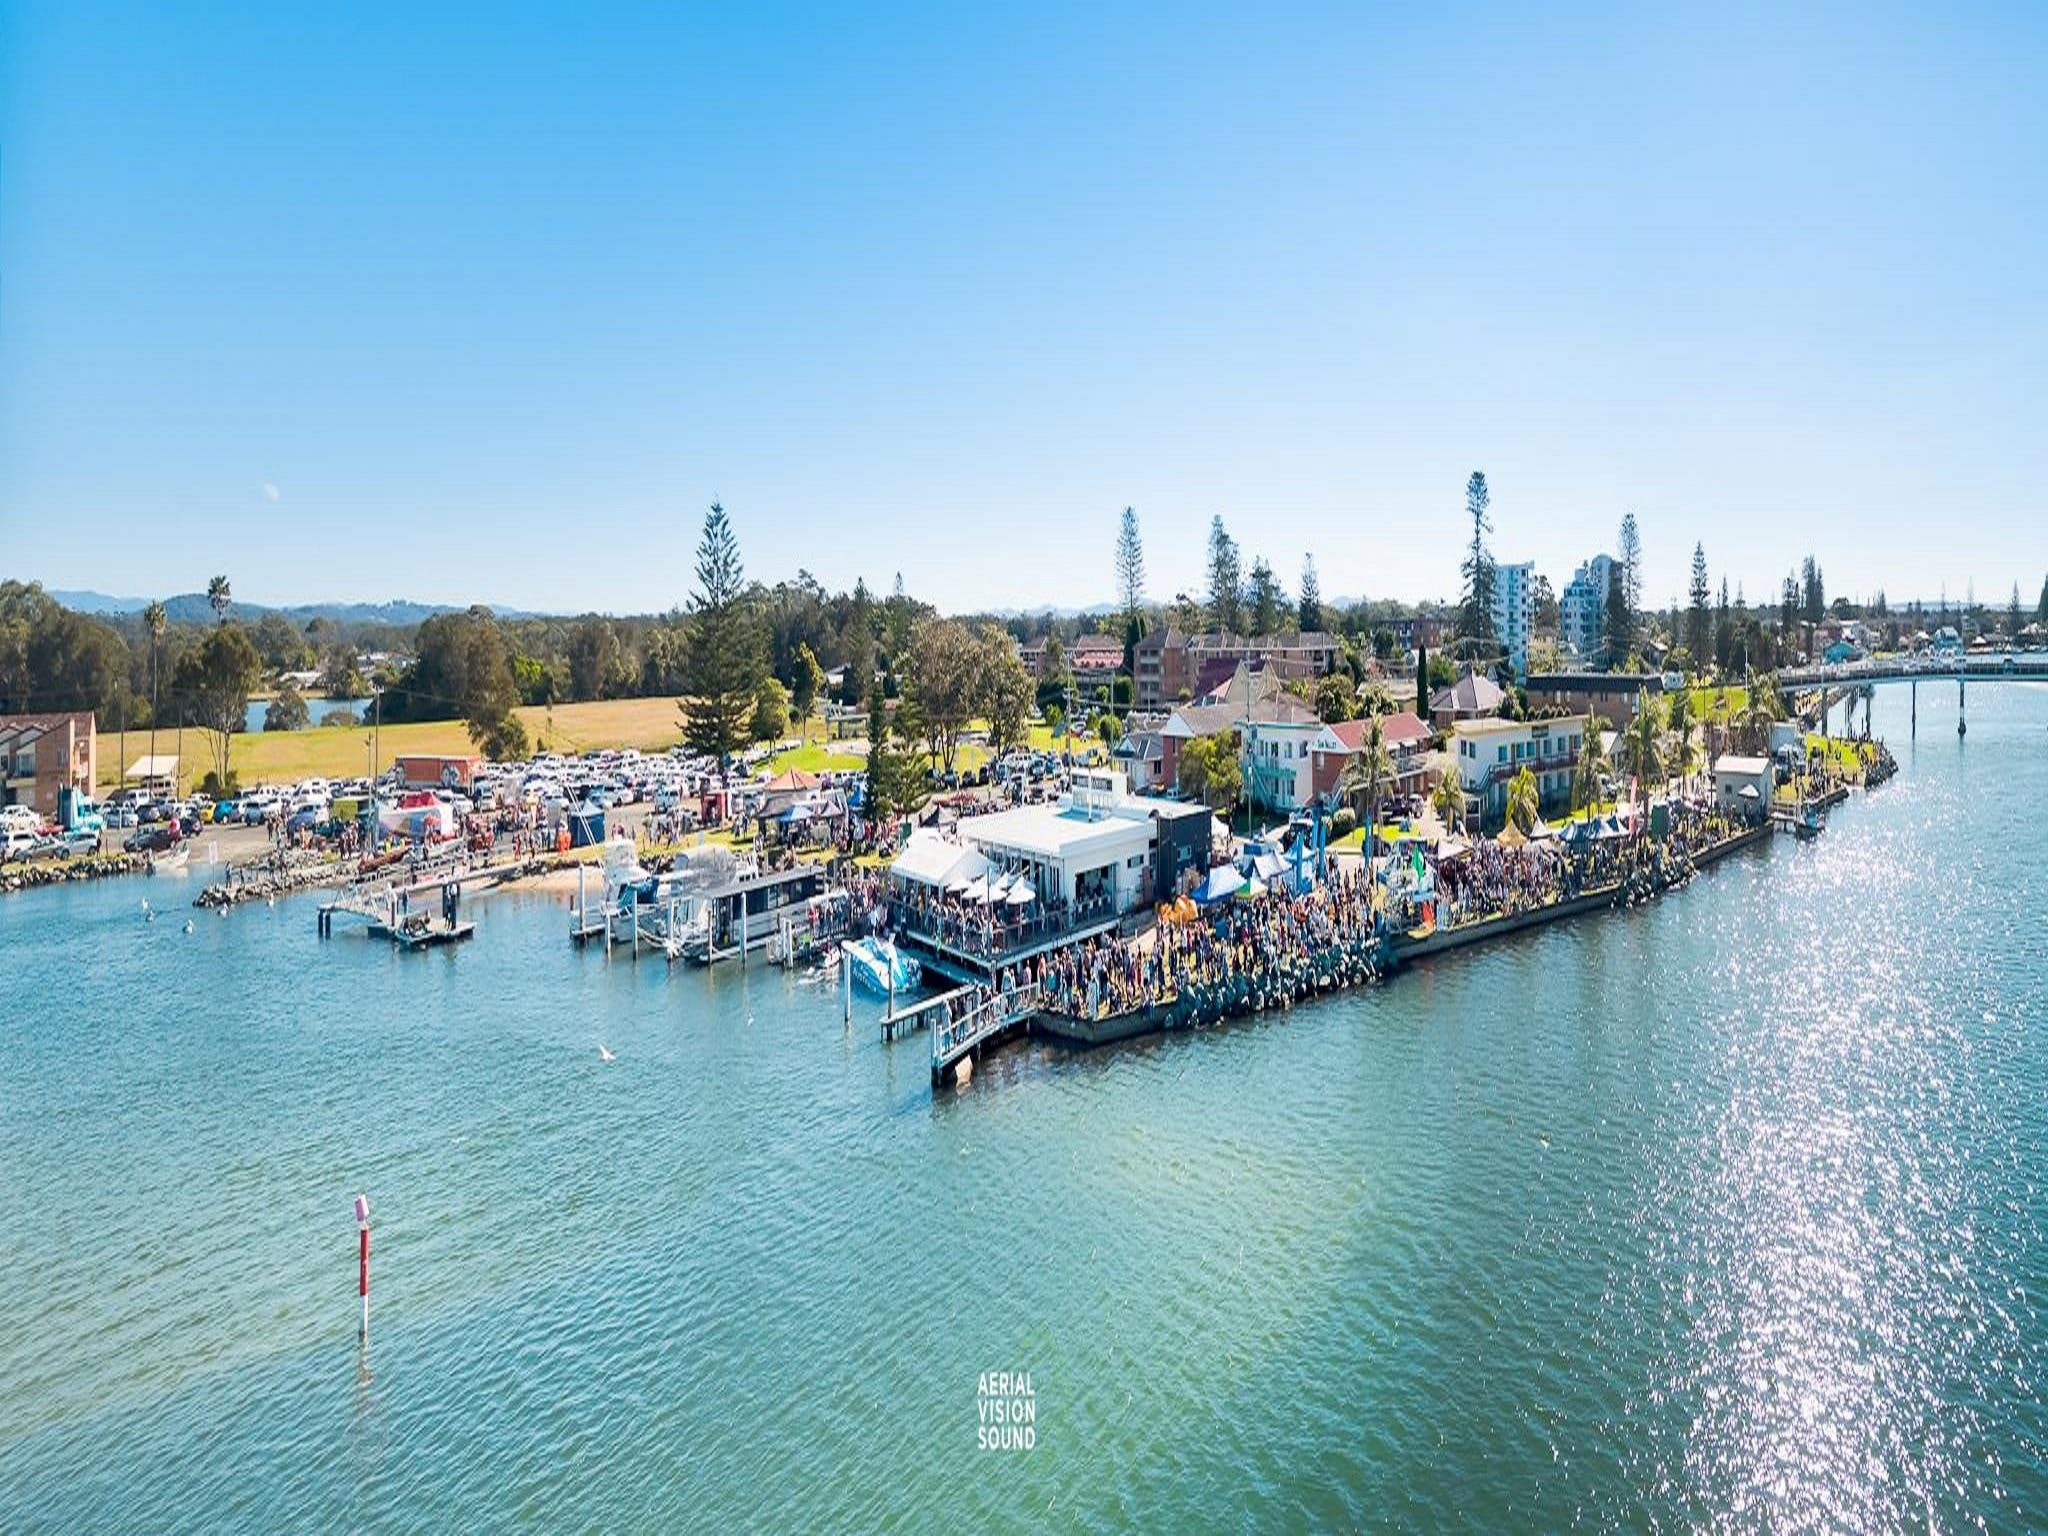 Fred Williams Aquatic Festival - VIC Tourism